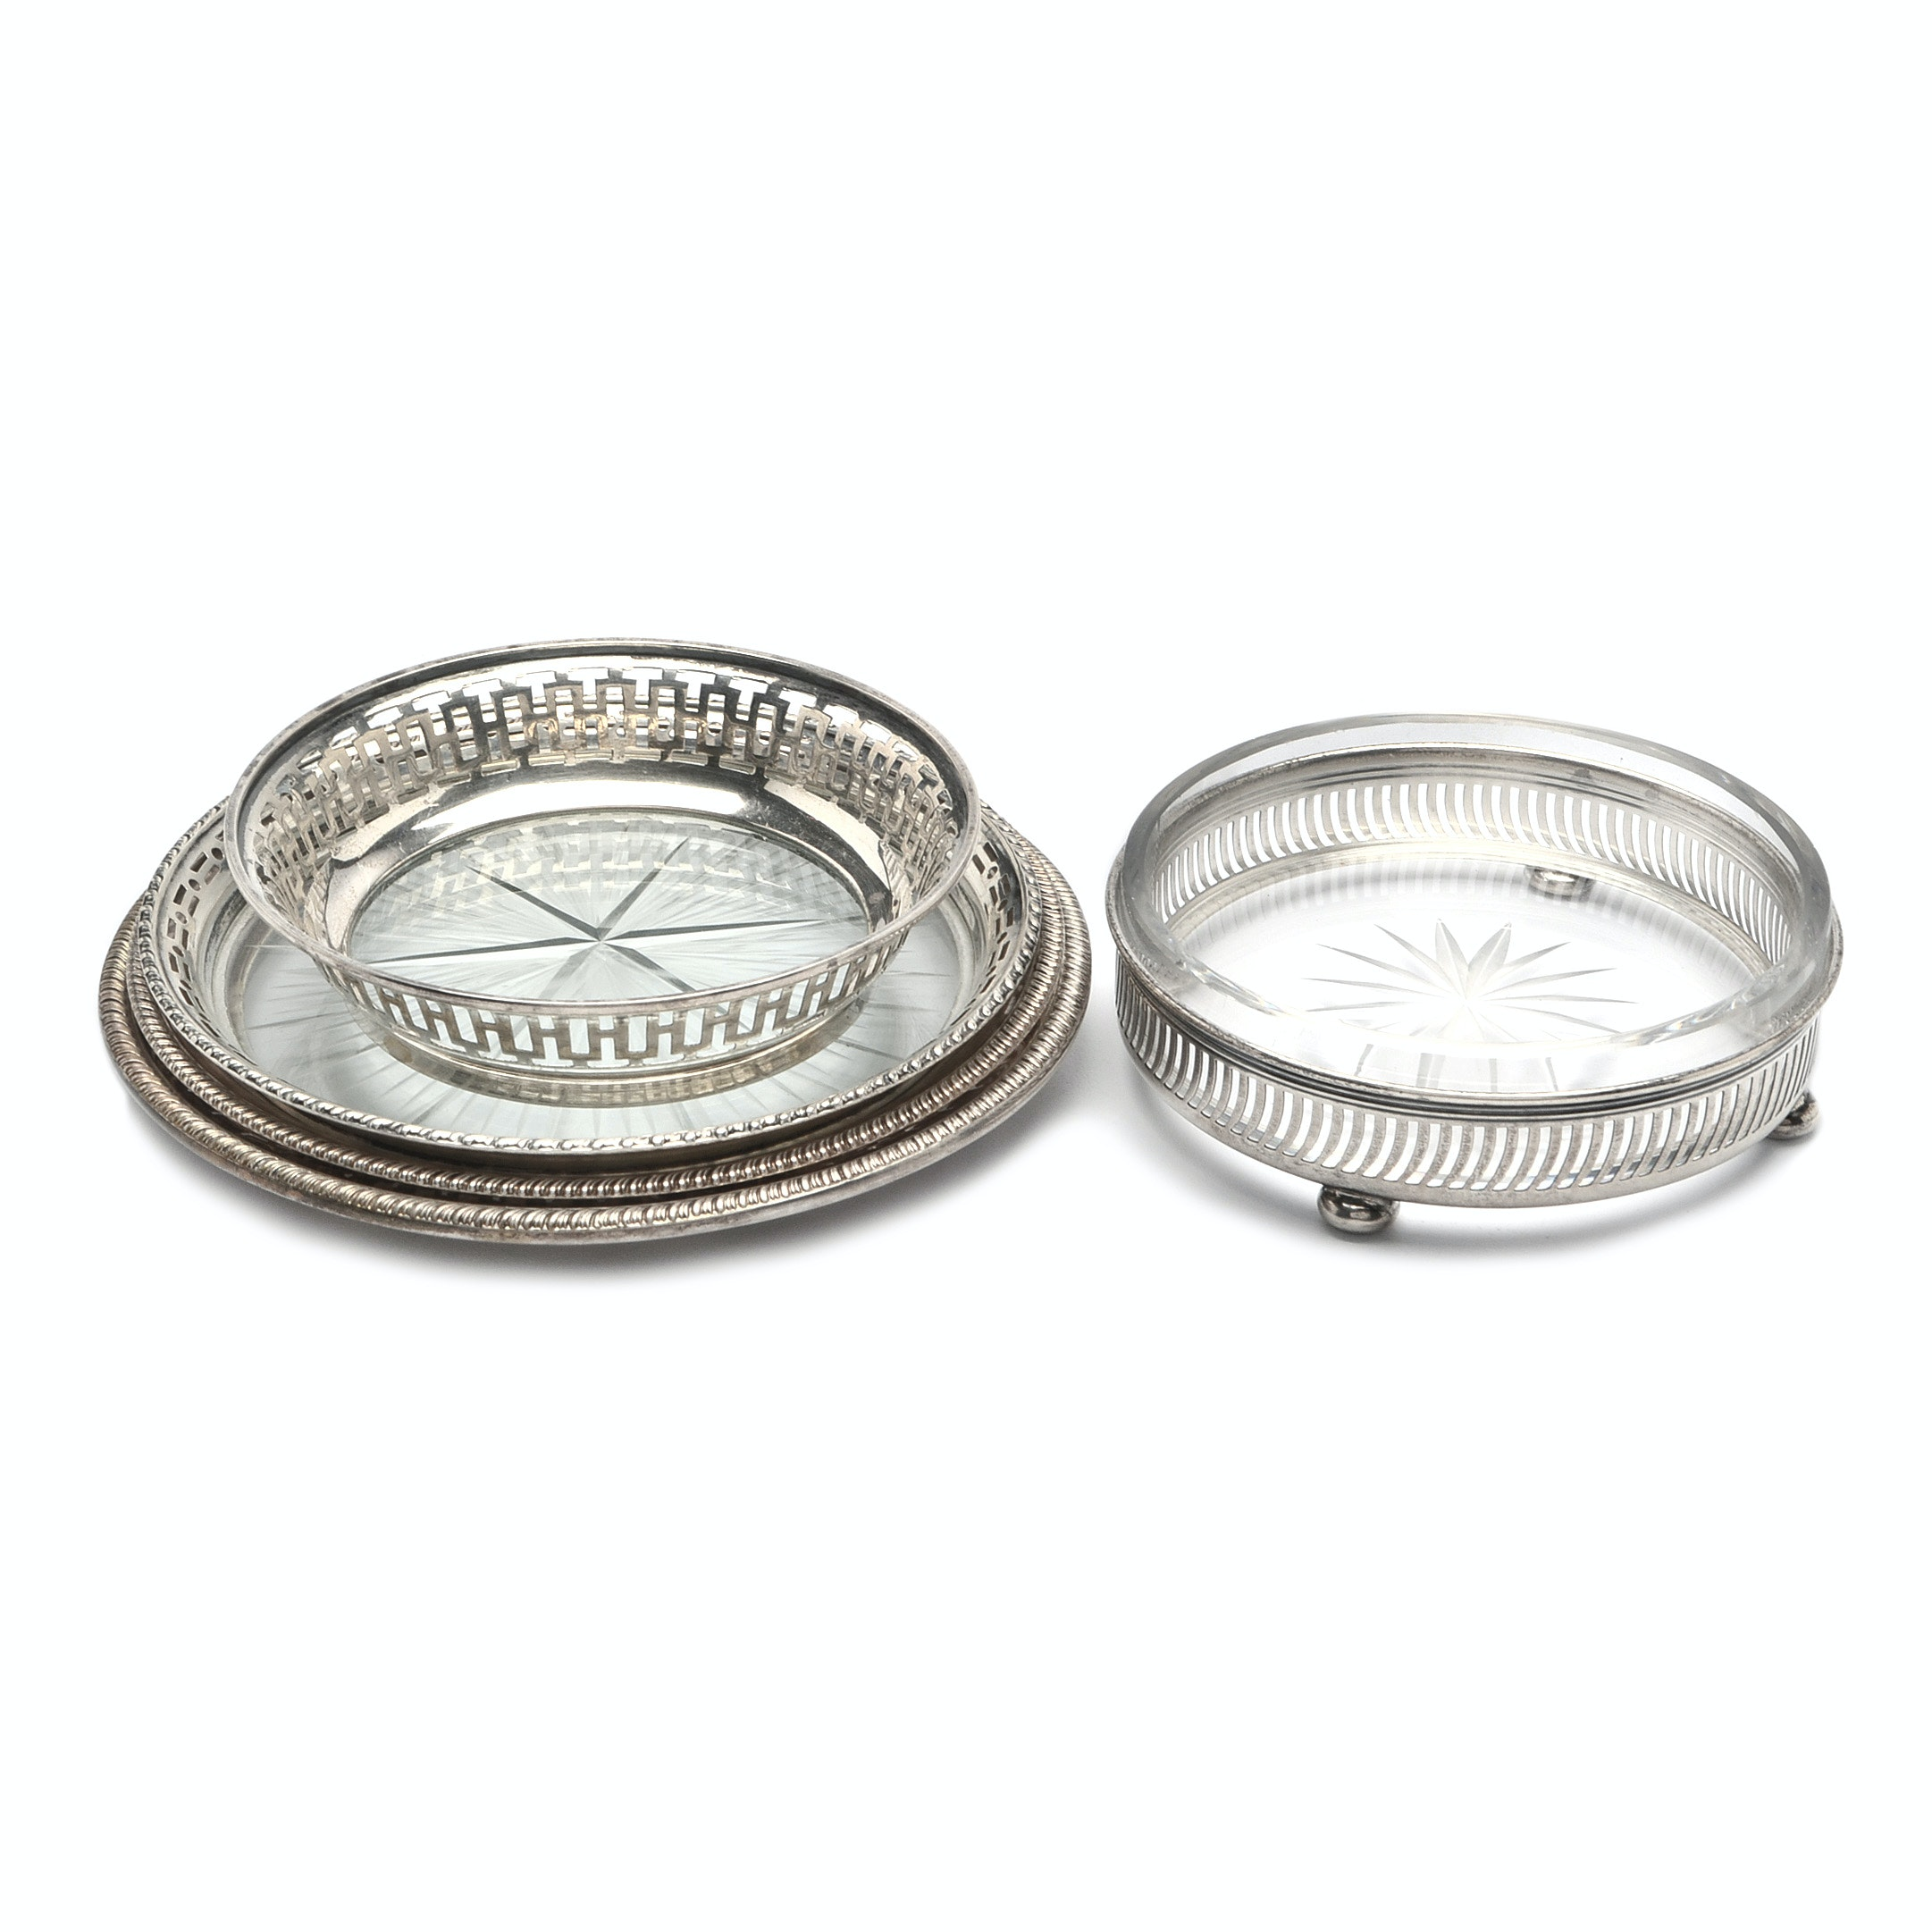 Gorham Mfg. Co. Sterling Silver and Cut Glass Coaster with Additional Coasters